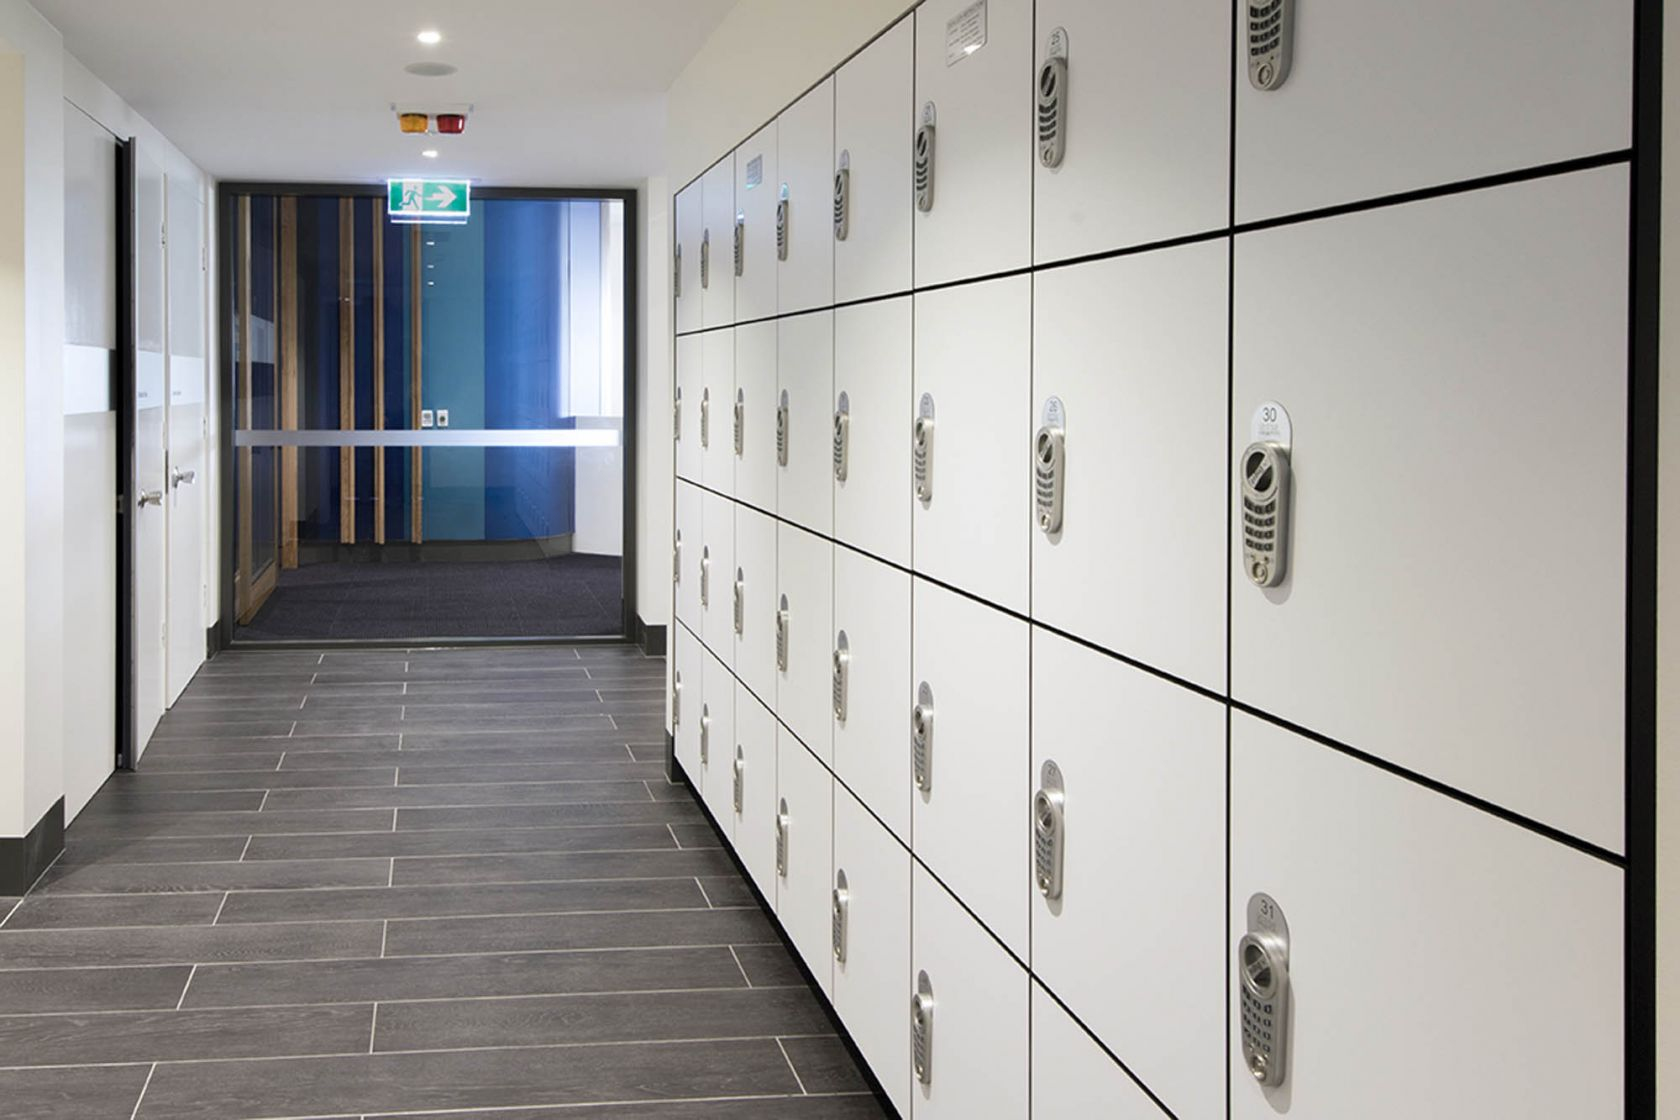 queensland university of technology executive centre brisbane education construction refurbishment lockers